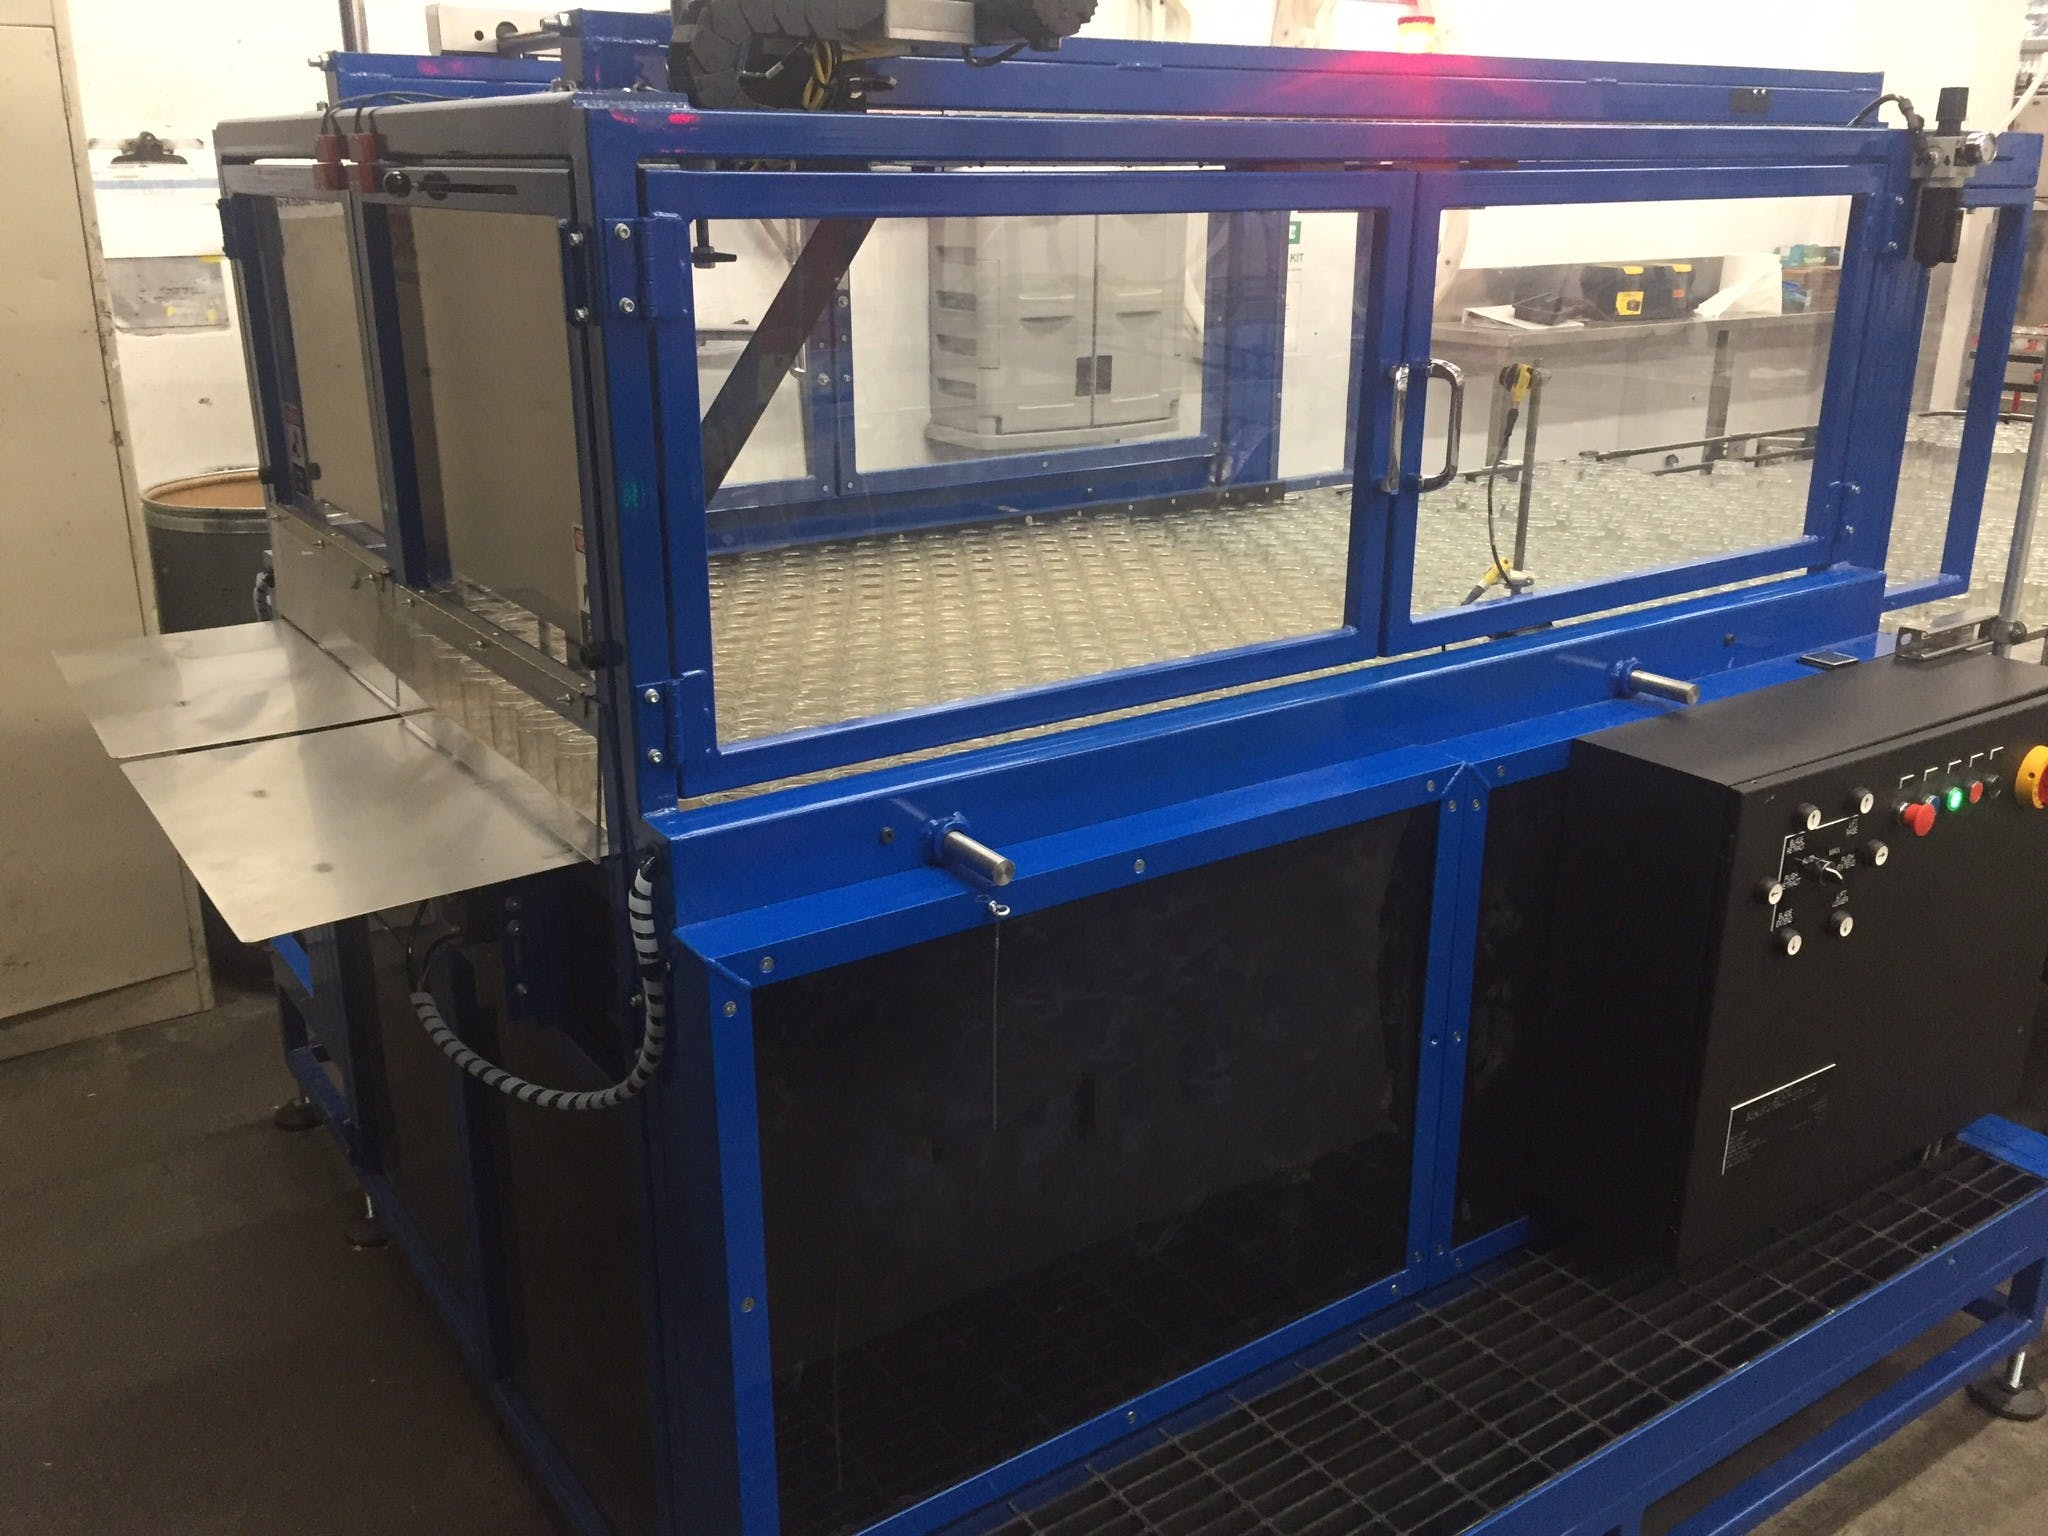 Automatic Depalletizer (half-height pallets) - Automatic Depalletizer (half-height pallets) - sold by GR-X Manufacturing